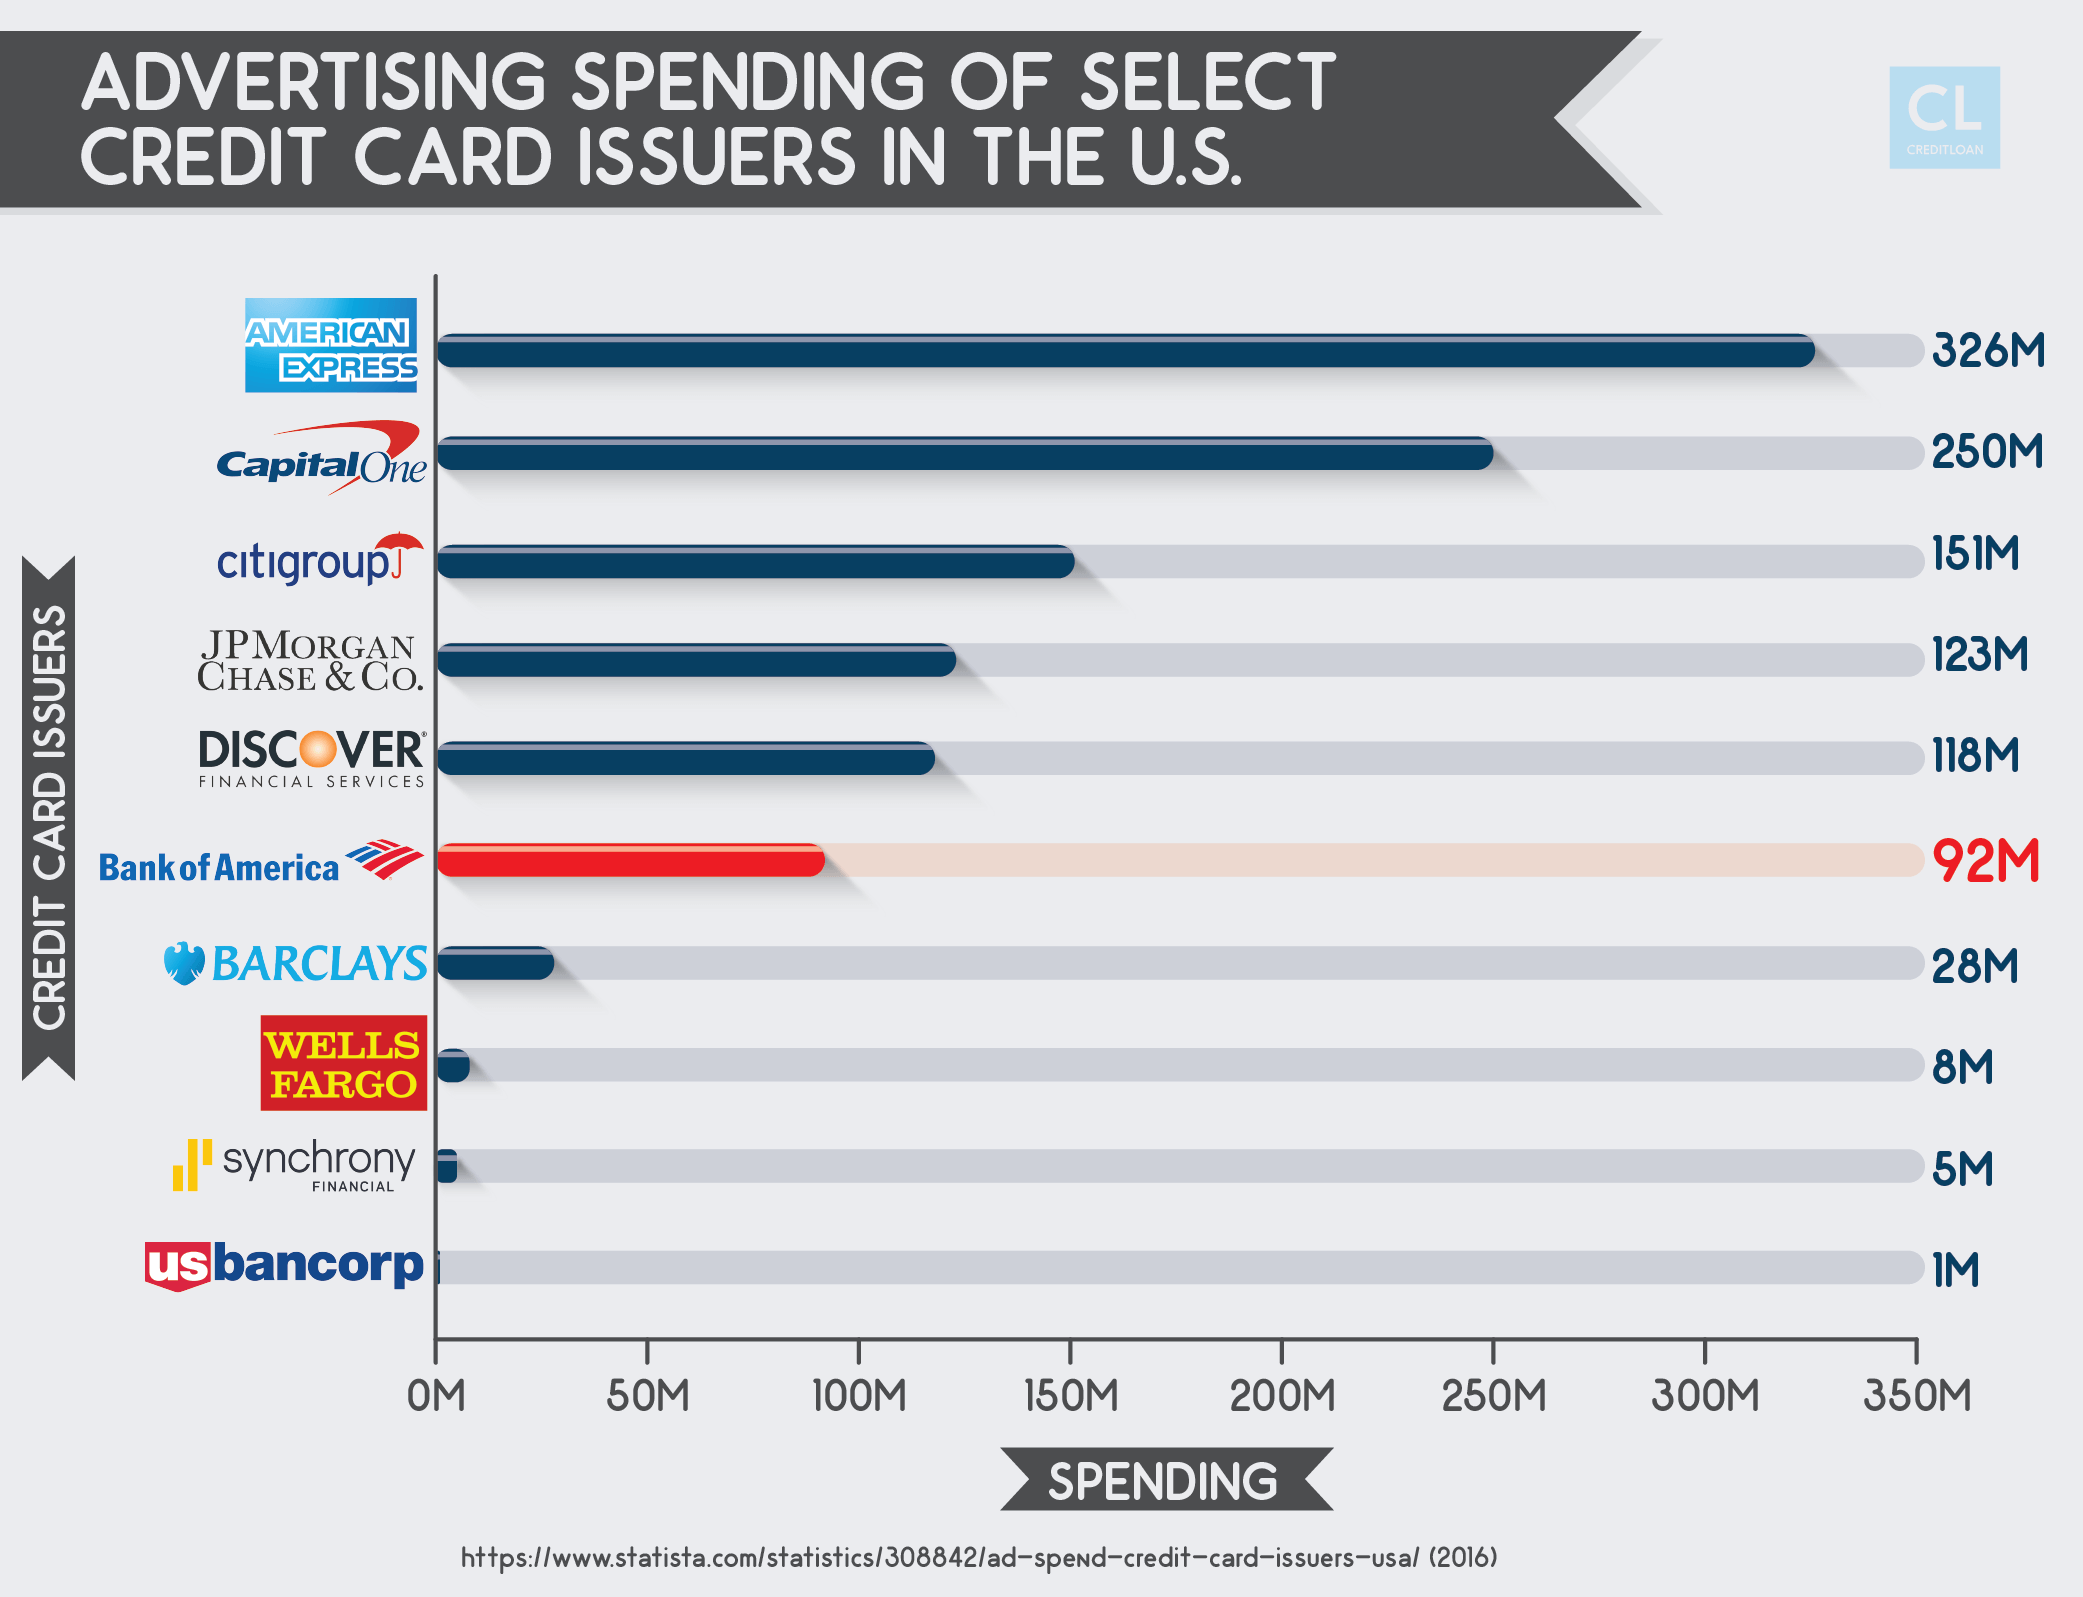 Advertising Spending of Select Credit Card Issuers